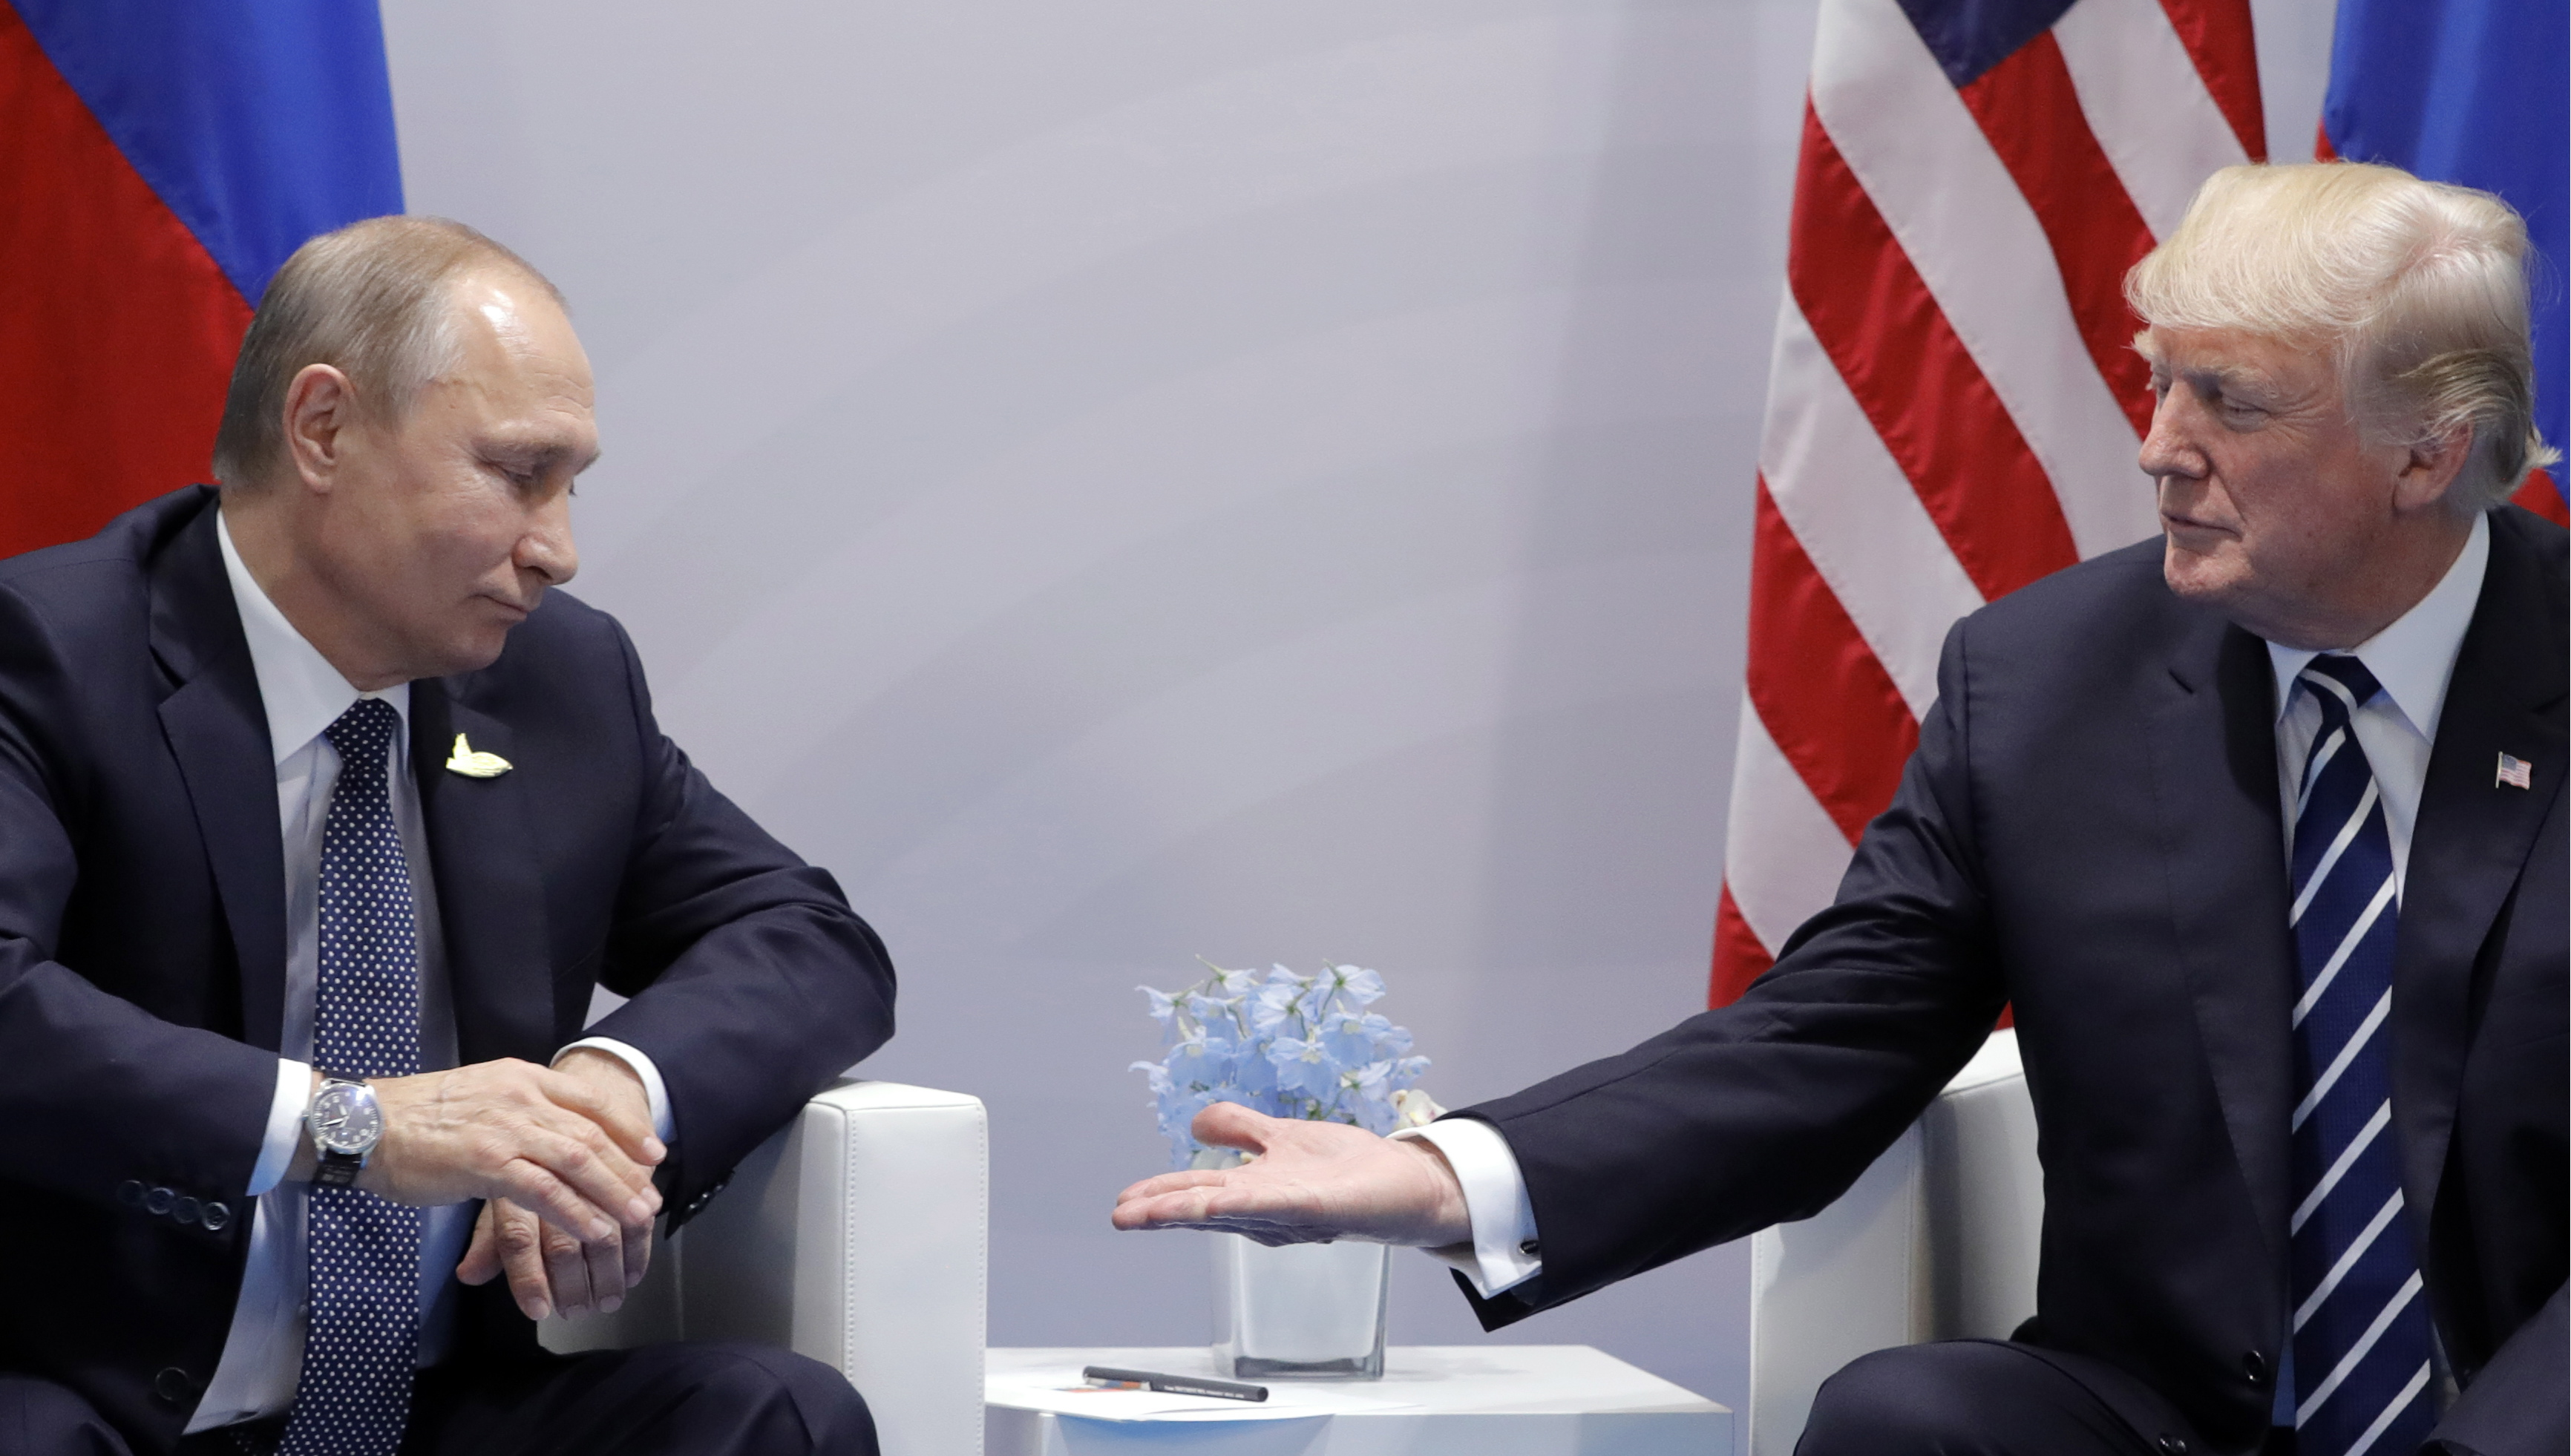 Russia's President Vladimir Putin (L) and U.S. President Donald Trump hold a bilateral meeting on the sidelines of the G20 summit in Hamburg.